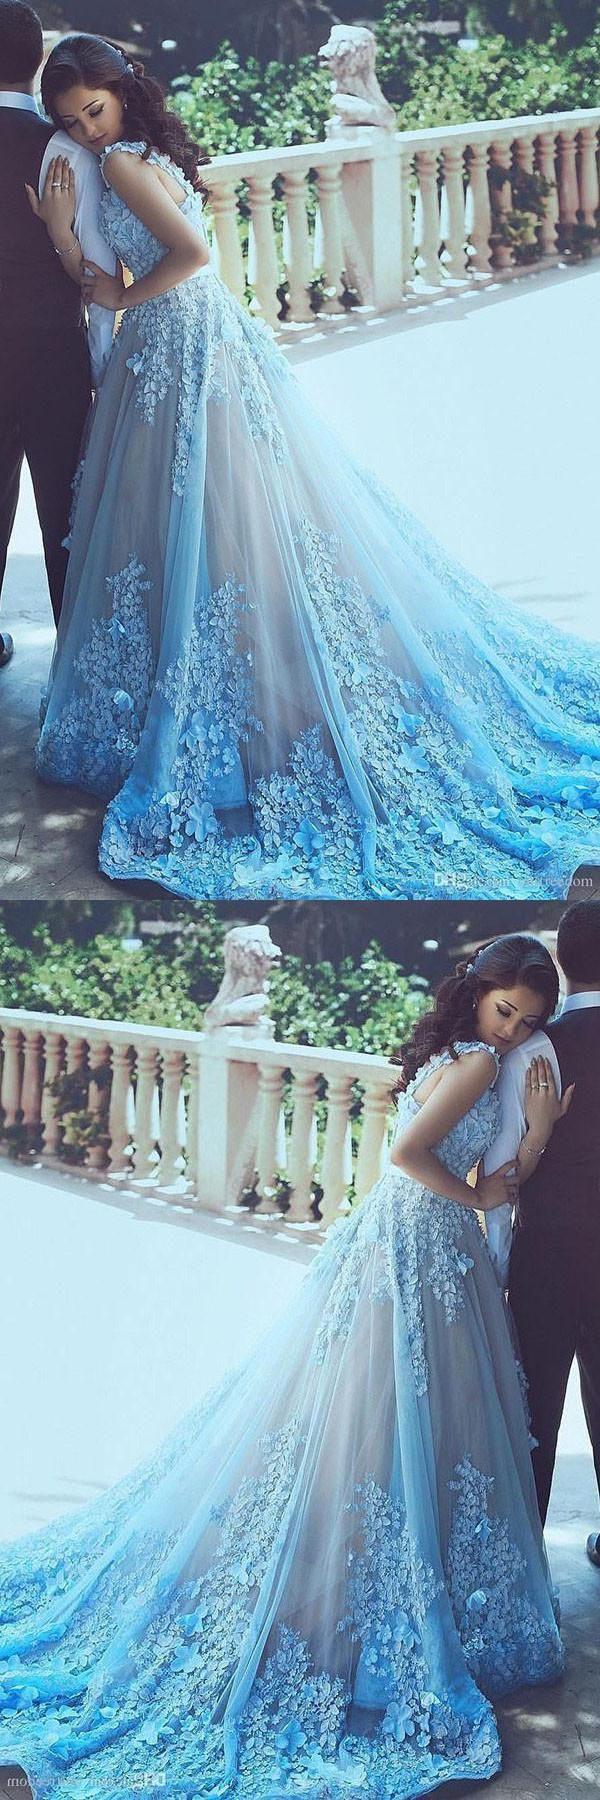 Wedding dresses with blue  Cathedral Train Wedding Dresses Blue Cathedral Train Wedding